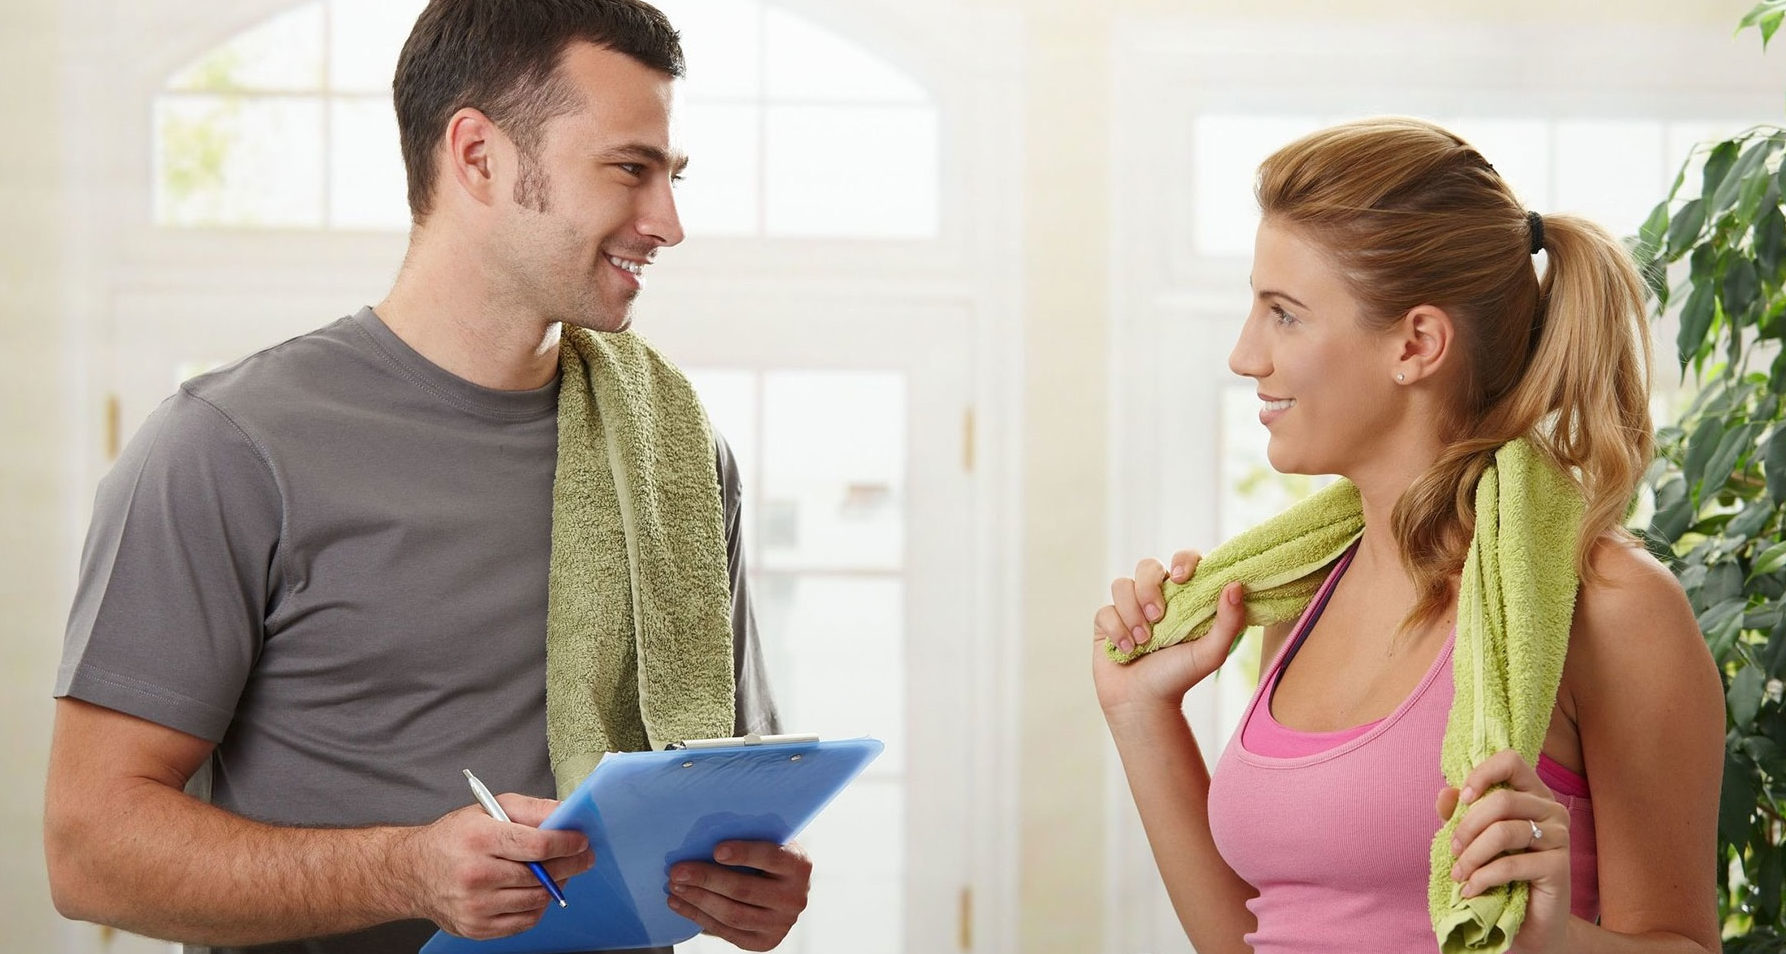 <b>BALTIMORE&#8217;S IN HOME PERSONAL TRAINING SERVICE</b>